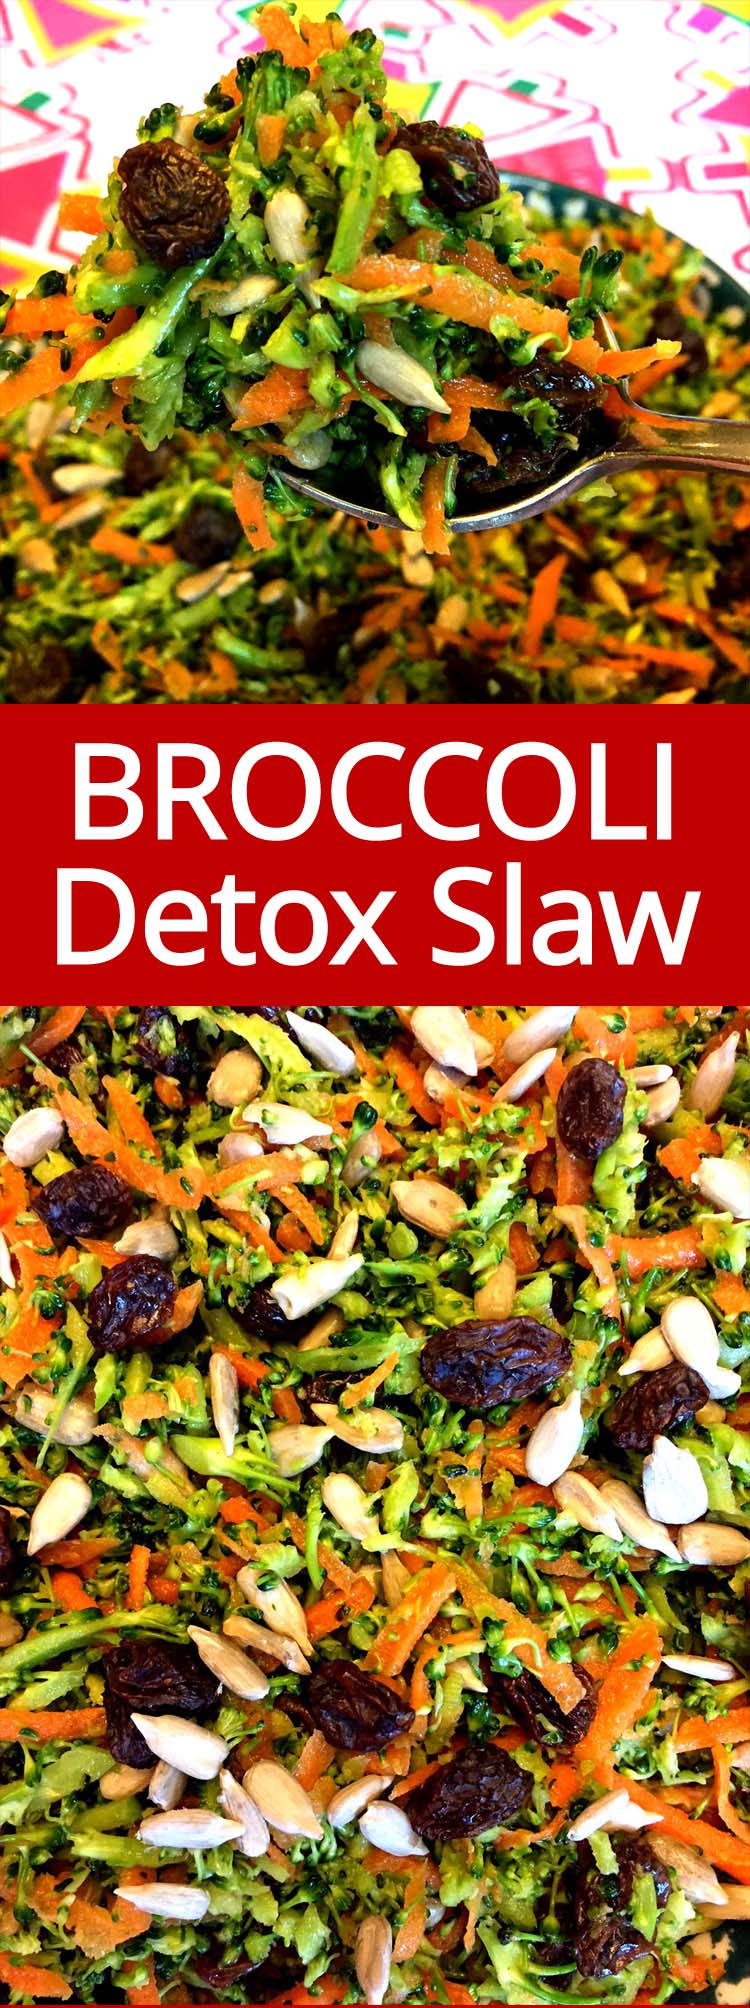 I love this healthy broccoli slaw! This raw detox broccoli salad is so good for you and tastes amazing!  You can make a huge batch and eat it all week!